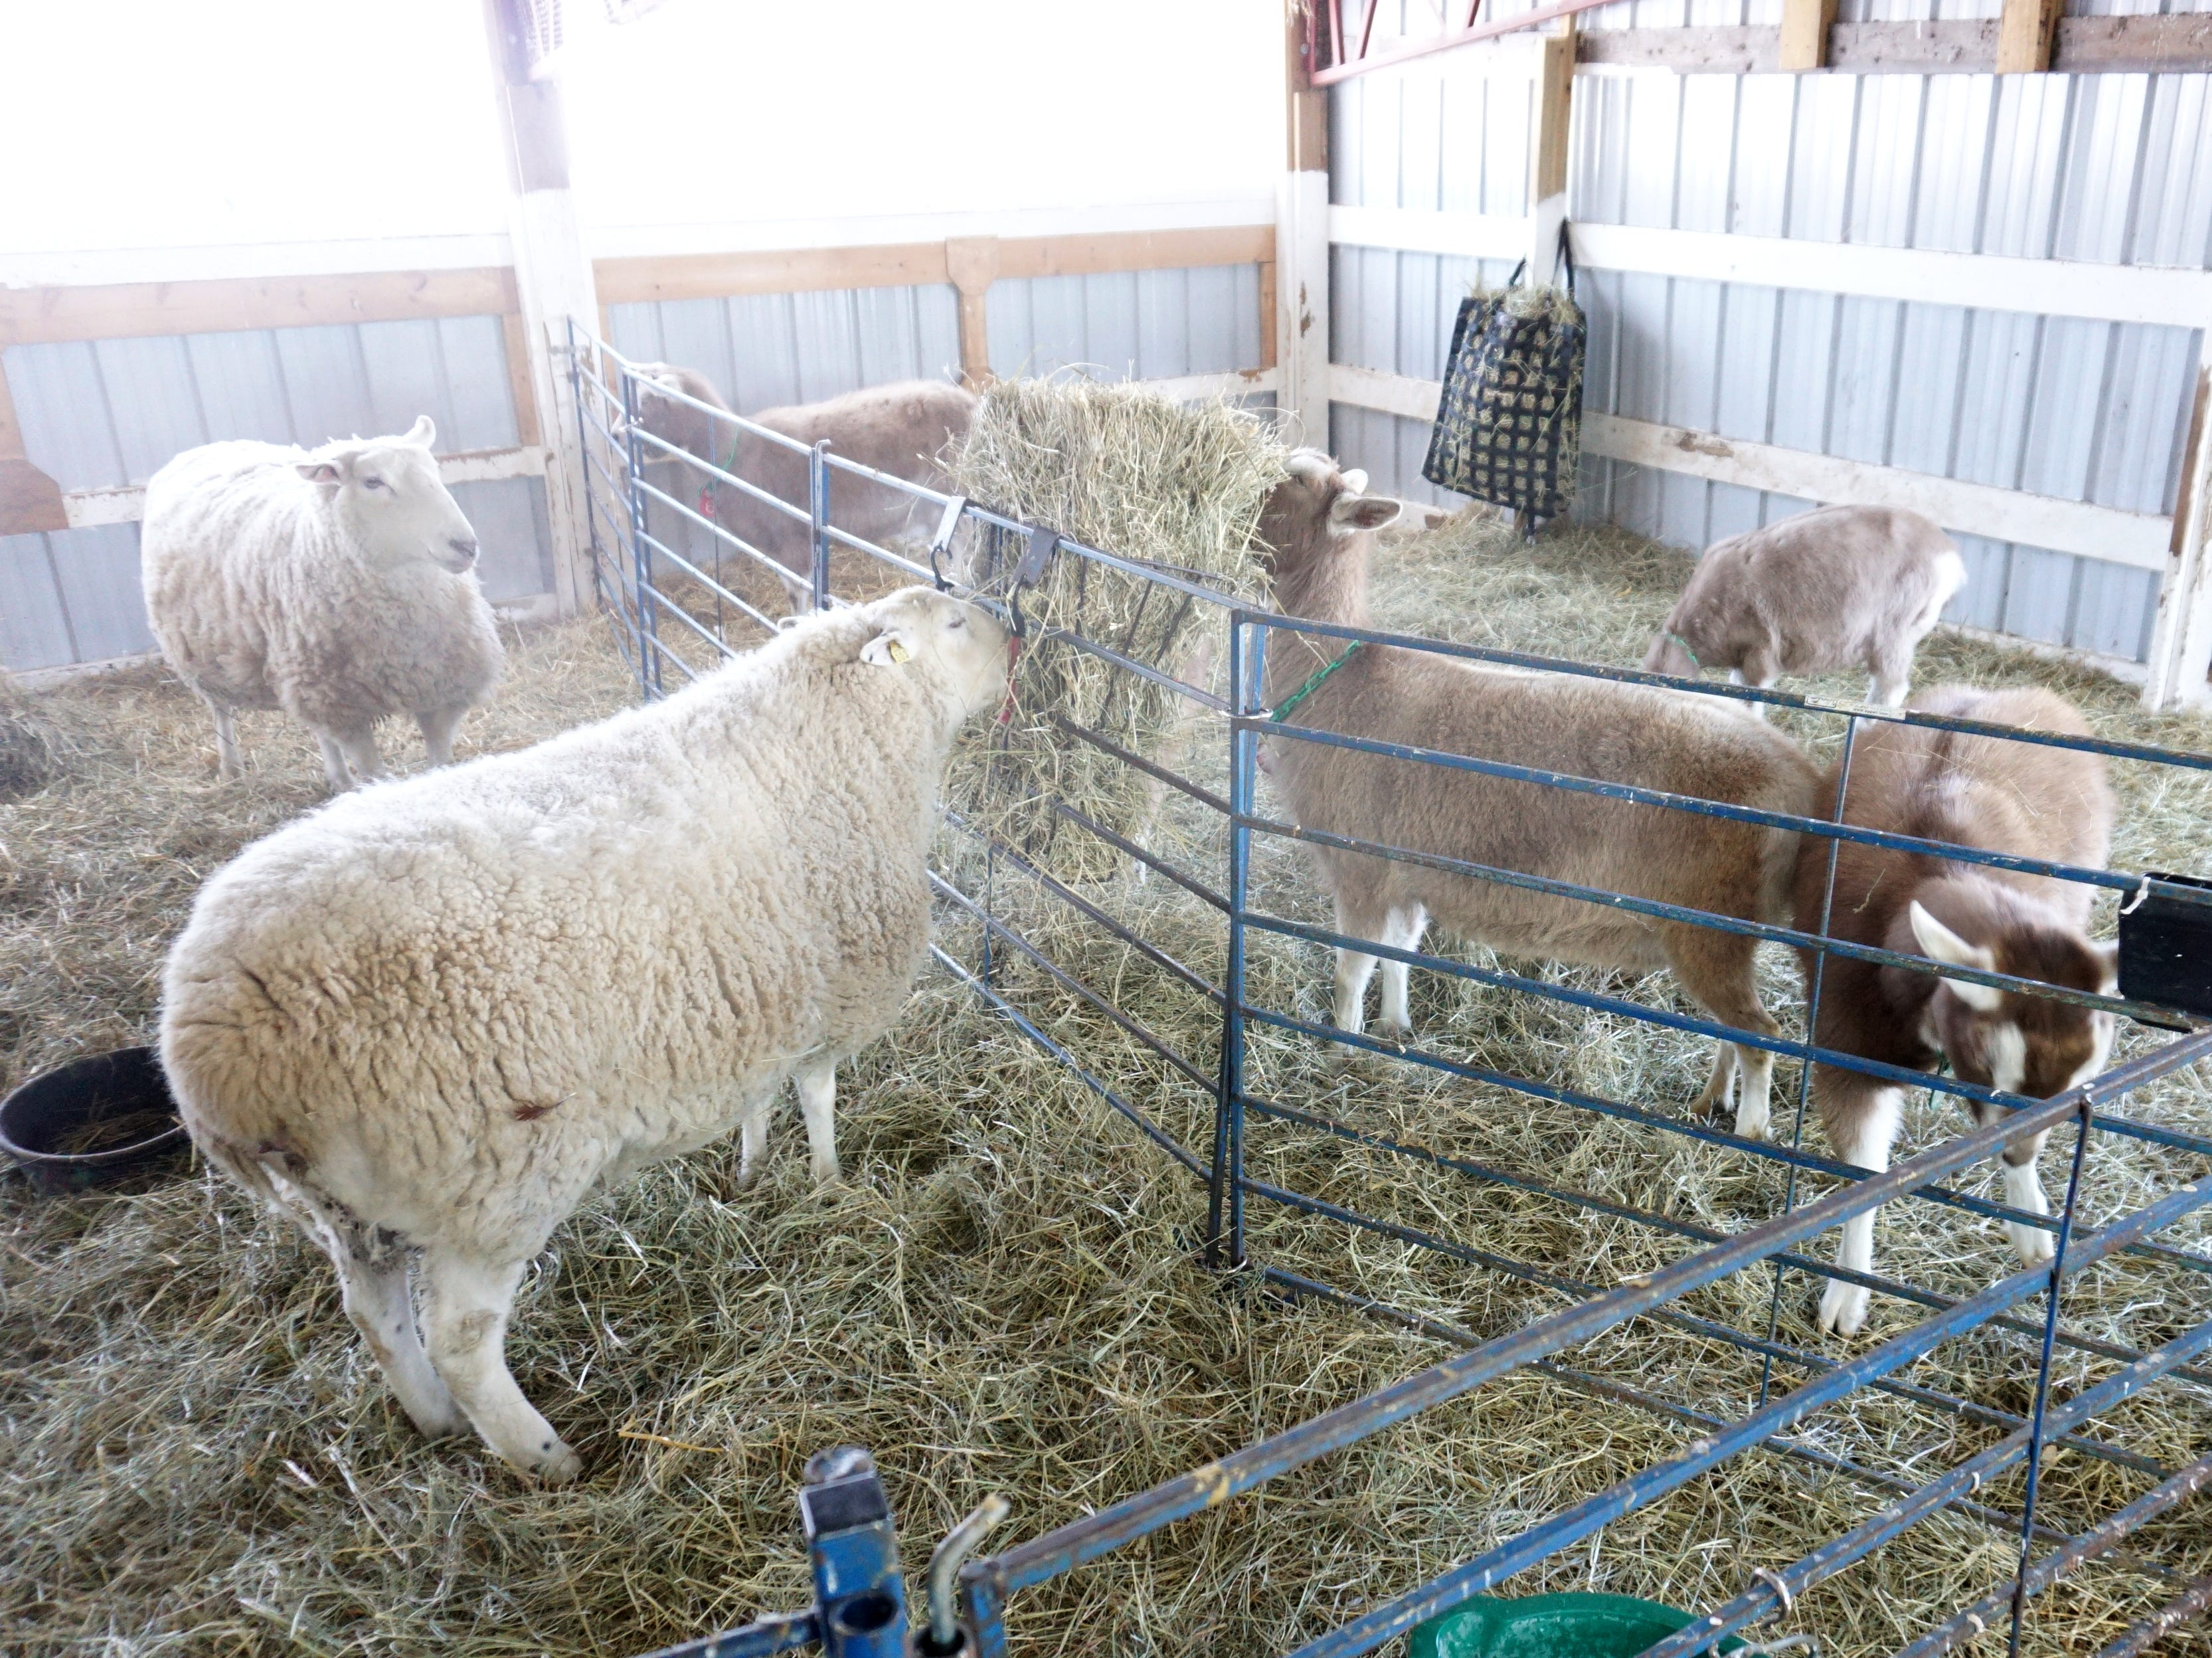 Tollgate Farms' sheep, goats and chickens found shelter in this unheated barn at the educational facility. Even though it protected the creatures from the wind it was still below zero in the barn.